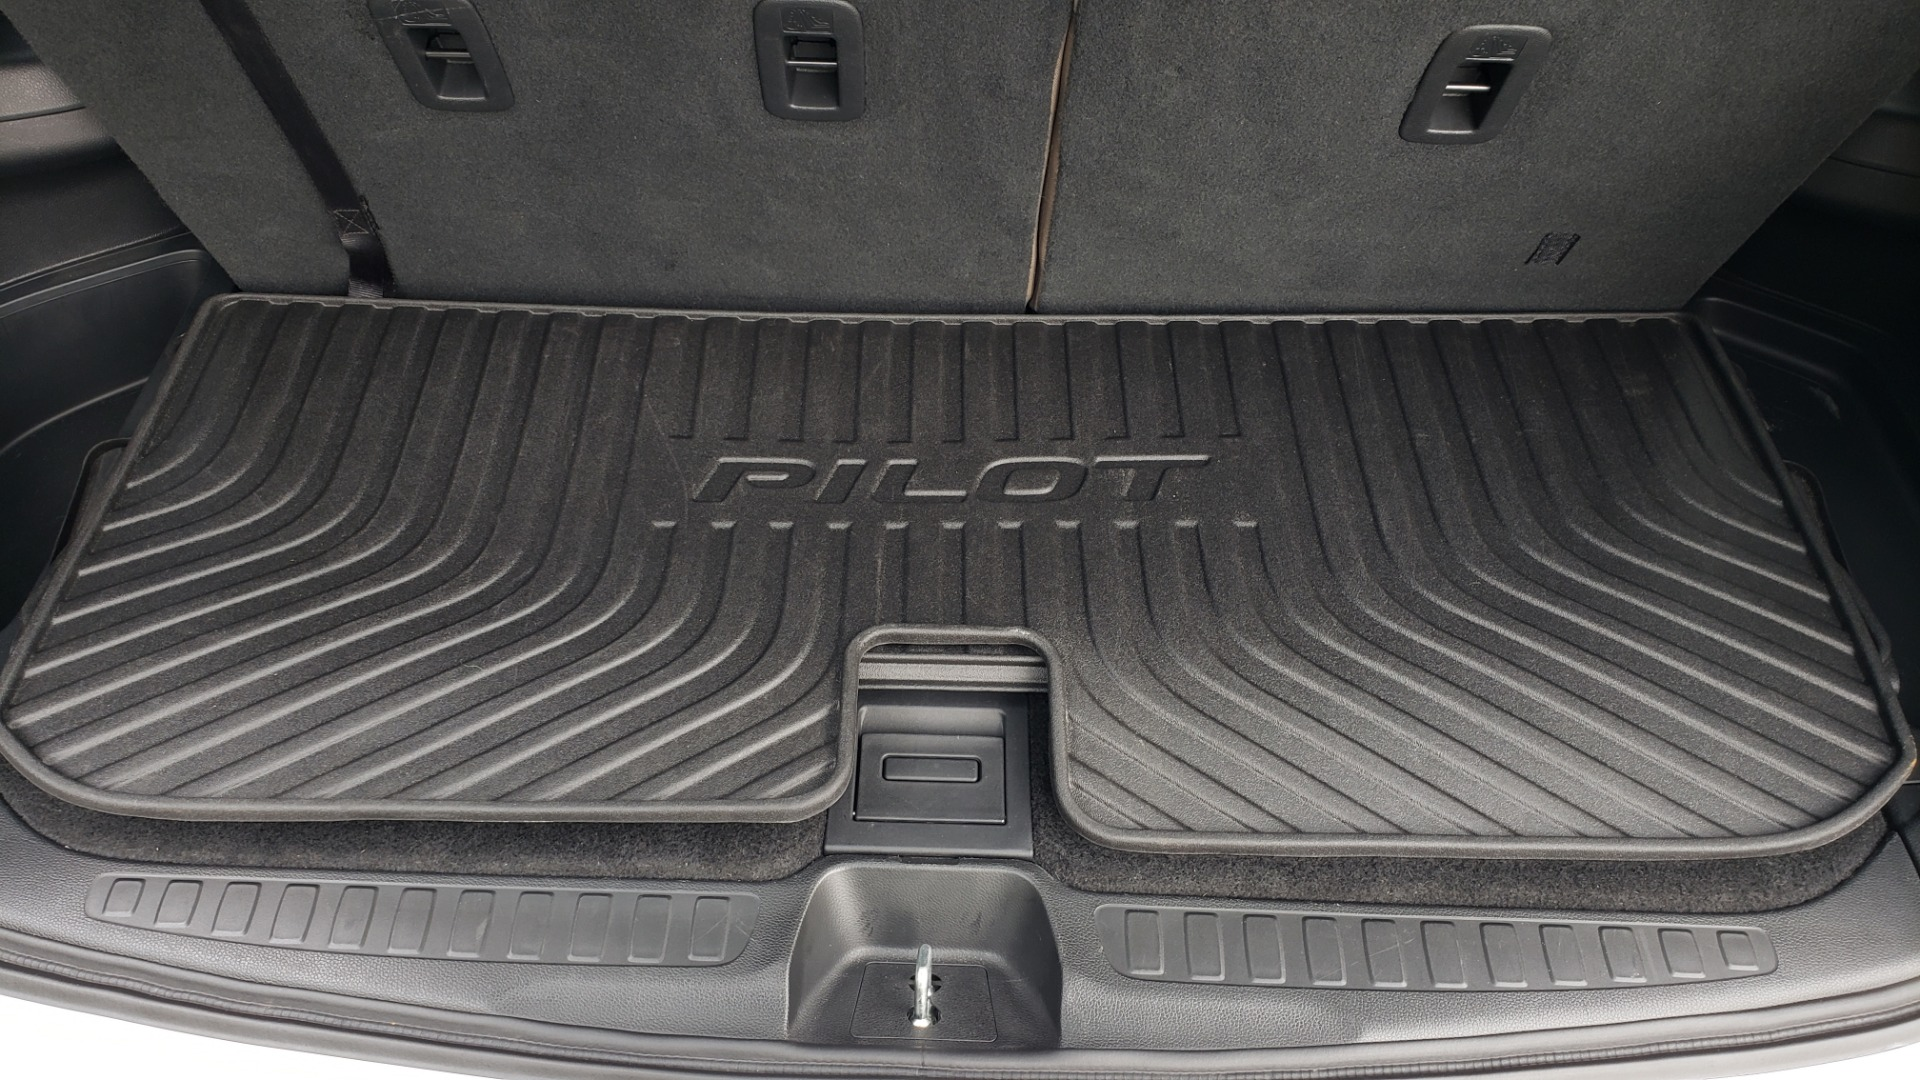 Used 2019 Honda PILOT EX-L / V6 / NAV / SUNROOF / DVD / 3-ROW / REARVIEW for sale Sold at Formula Imports in Charlotte NC 28227 16